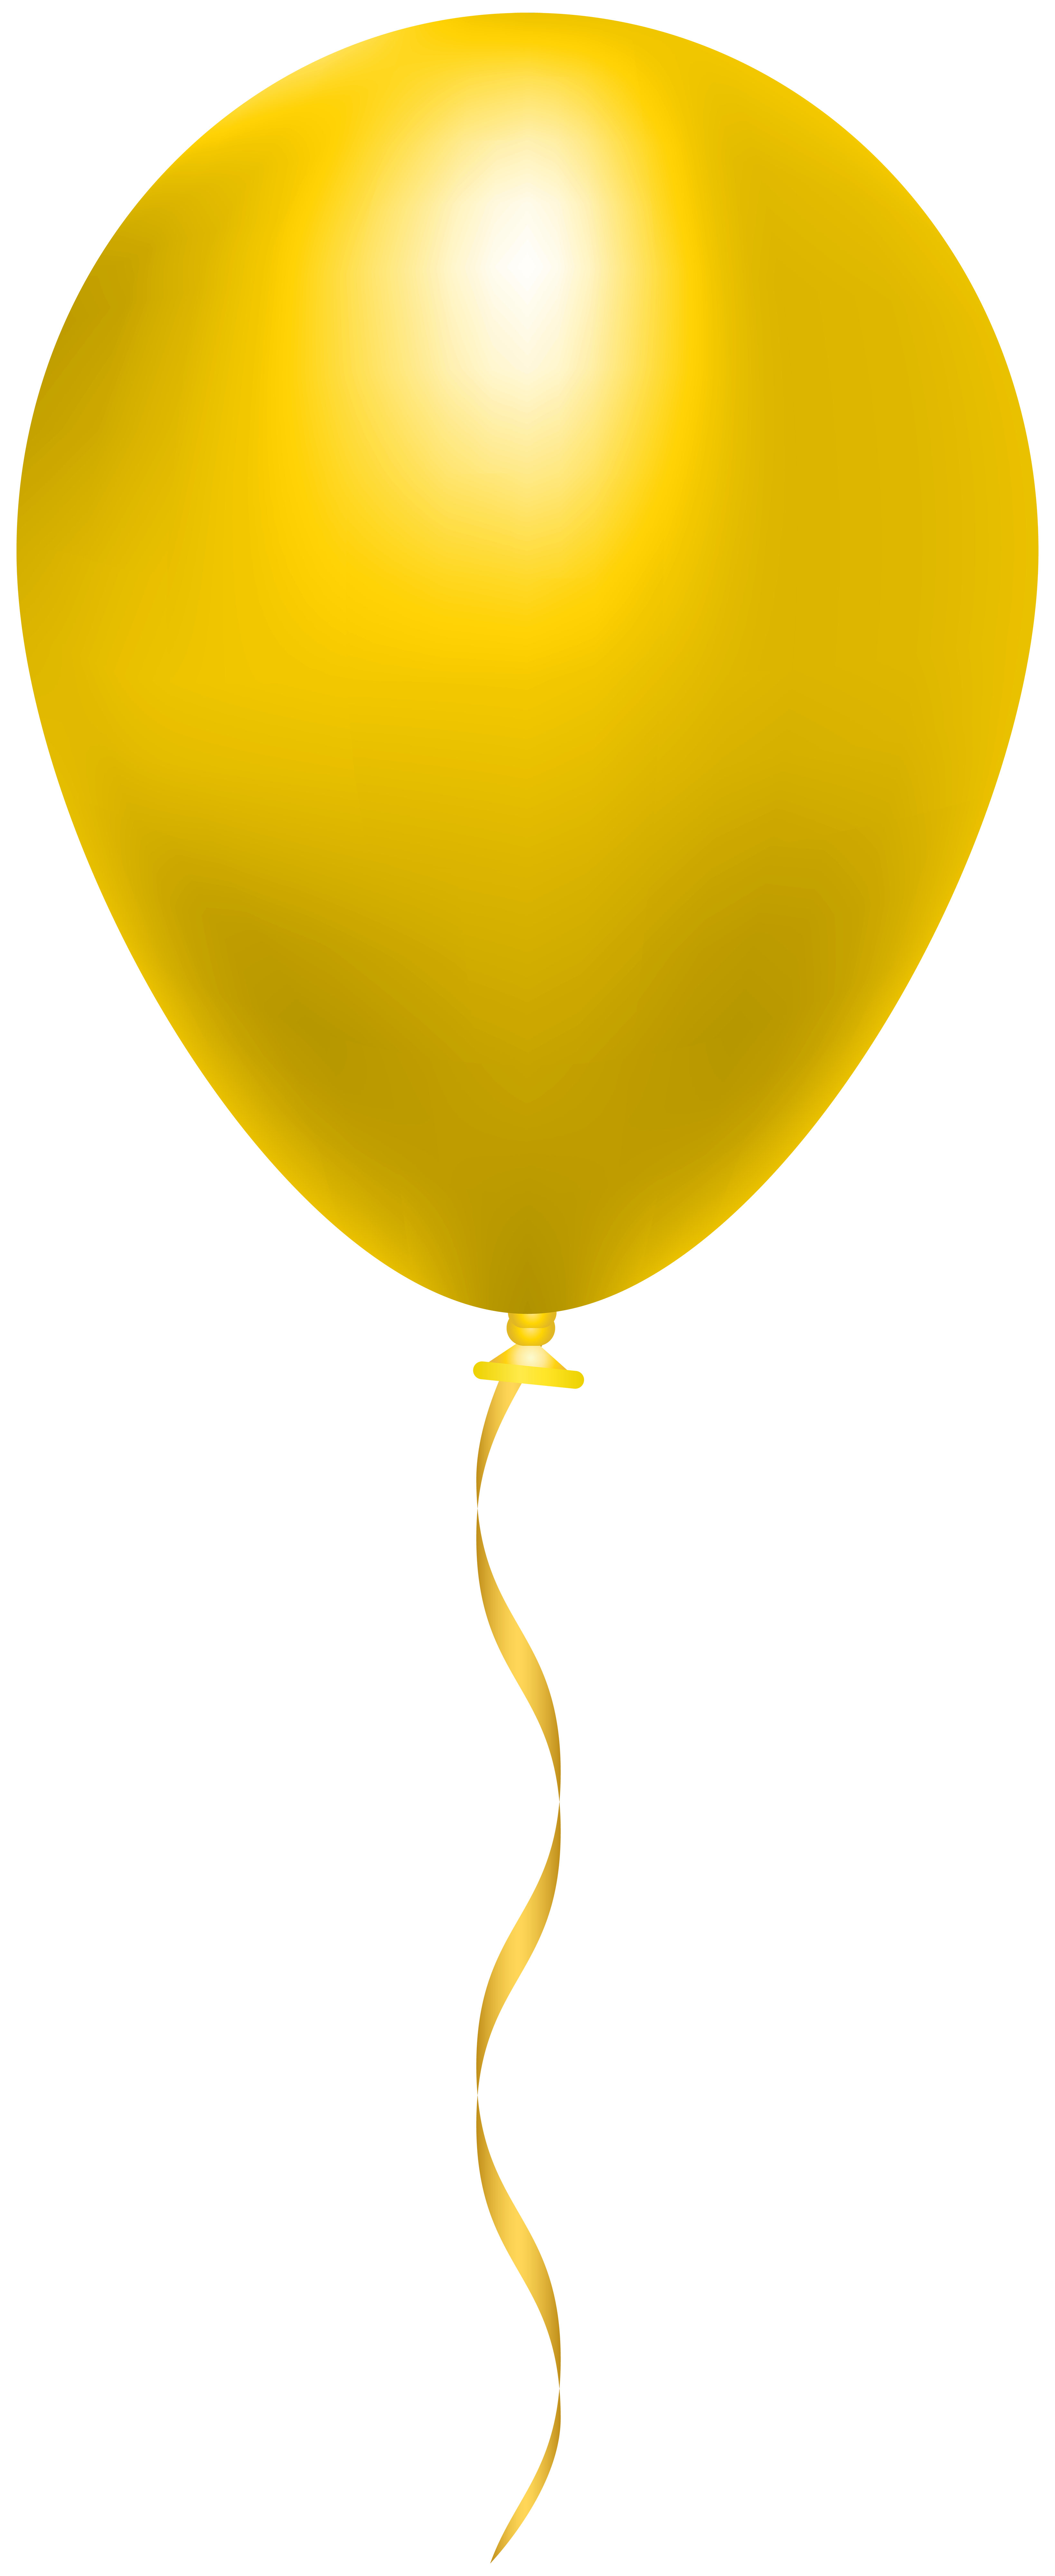 Png clip art image. Clipart balloon yellow